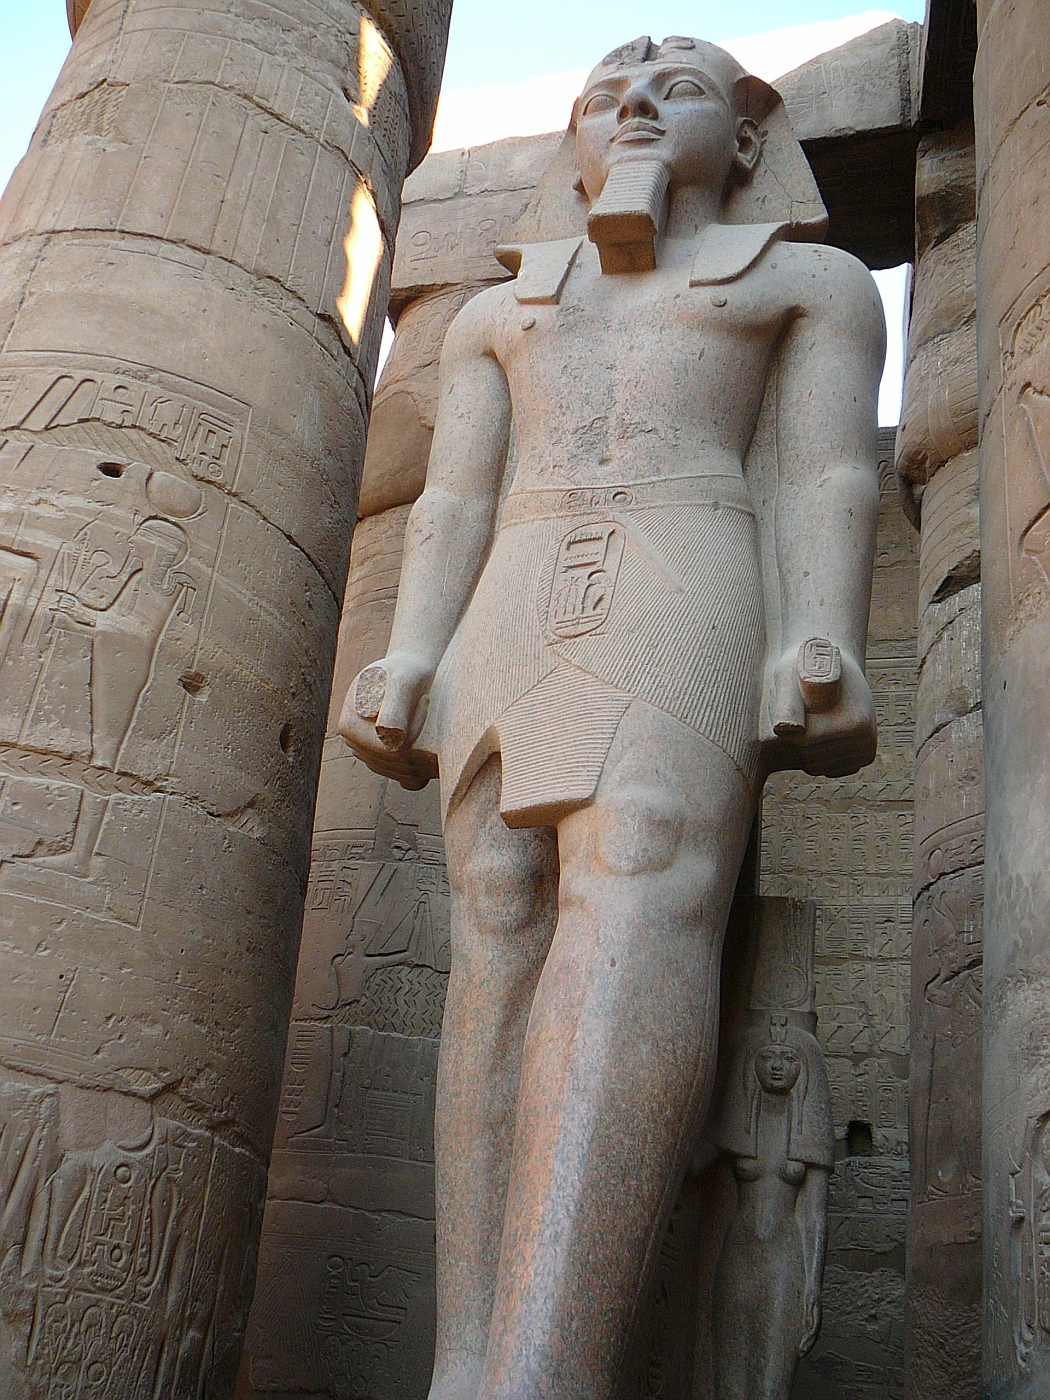 Huge Statue of Ramses II